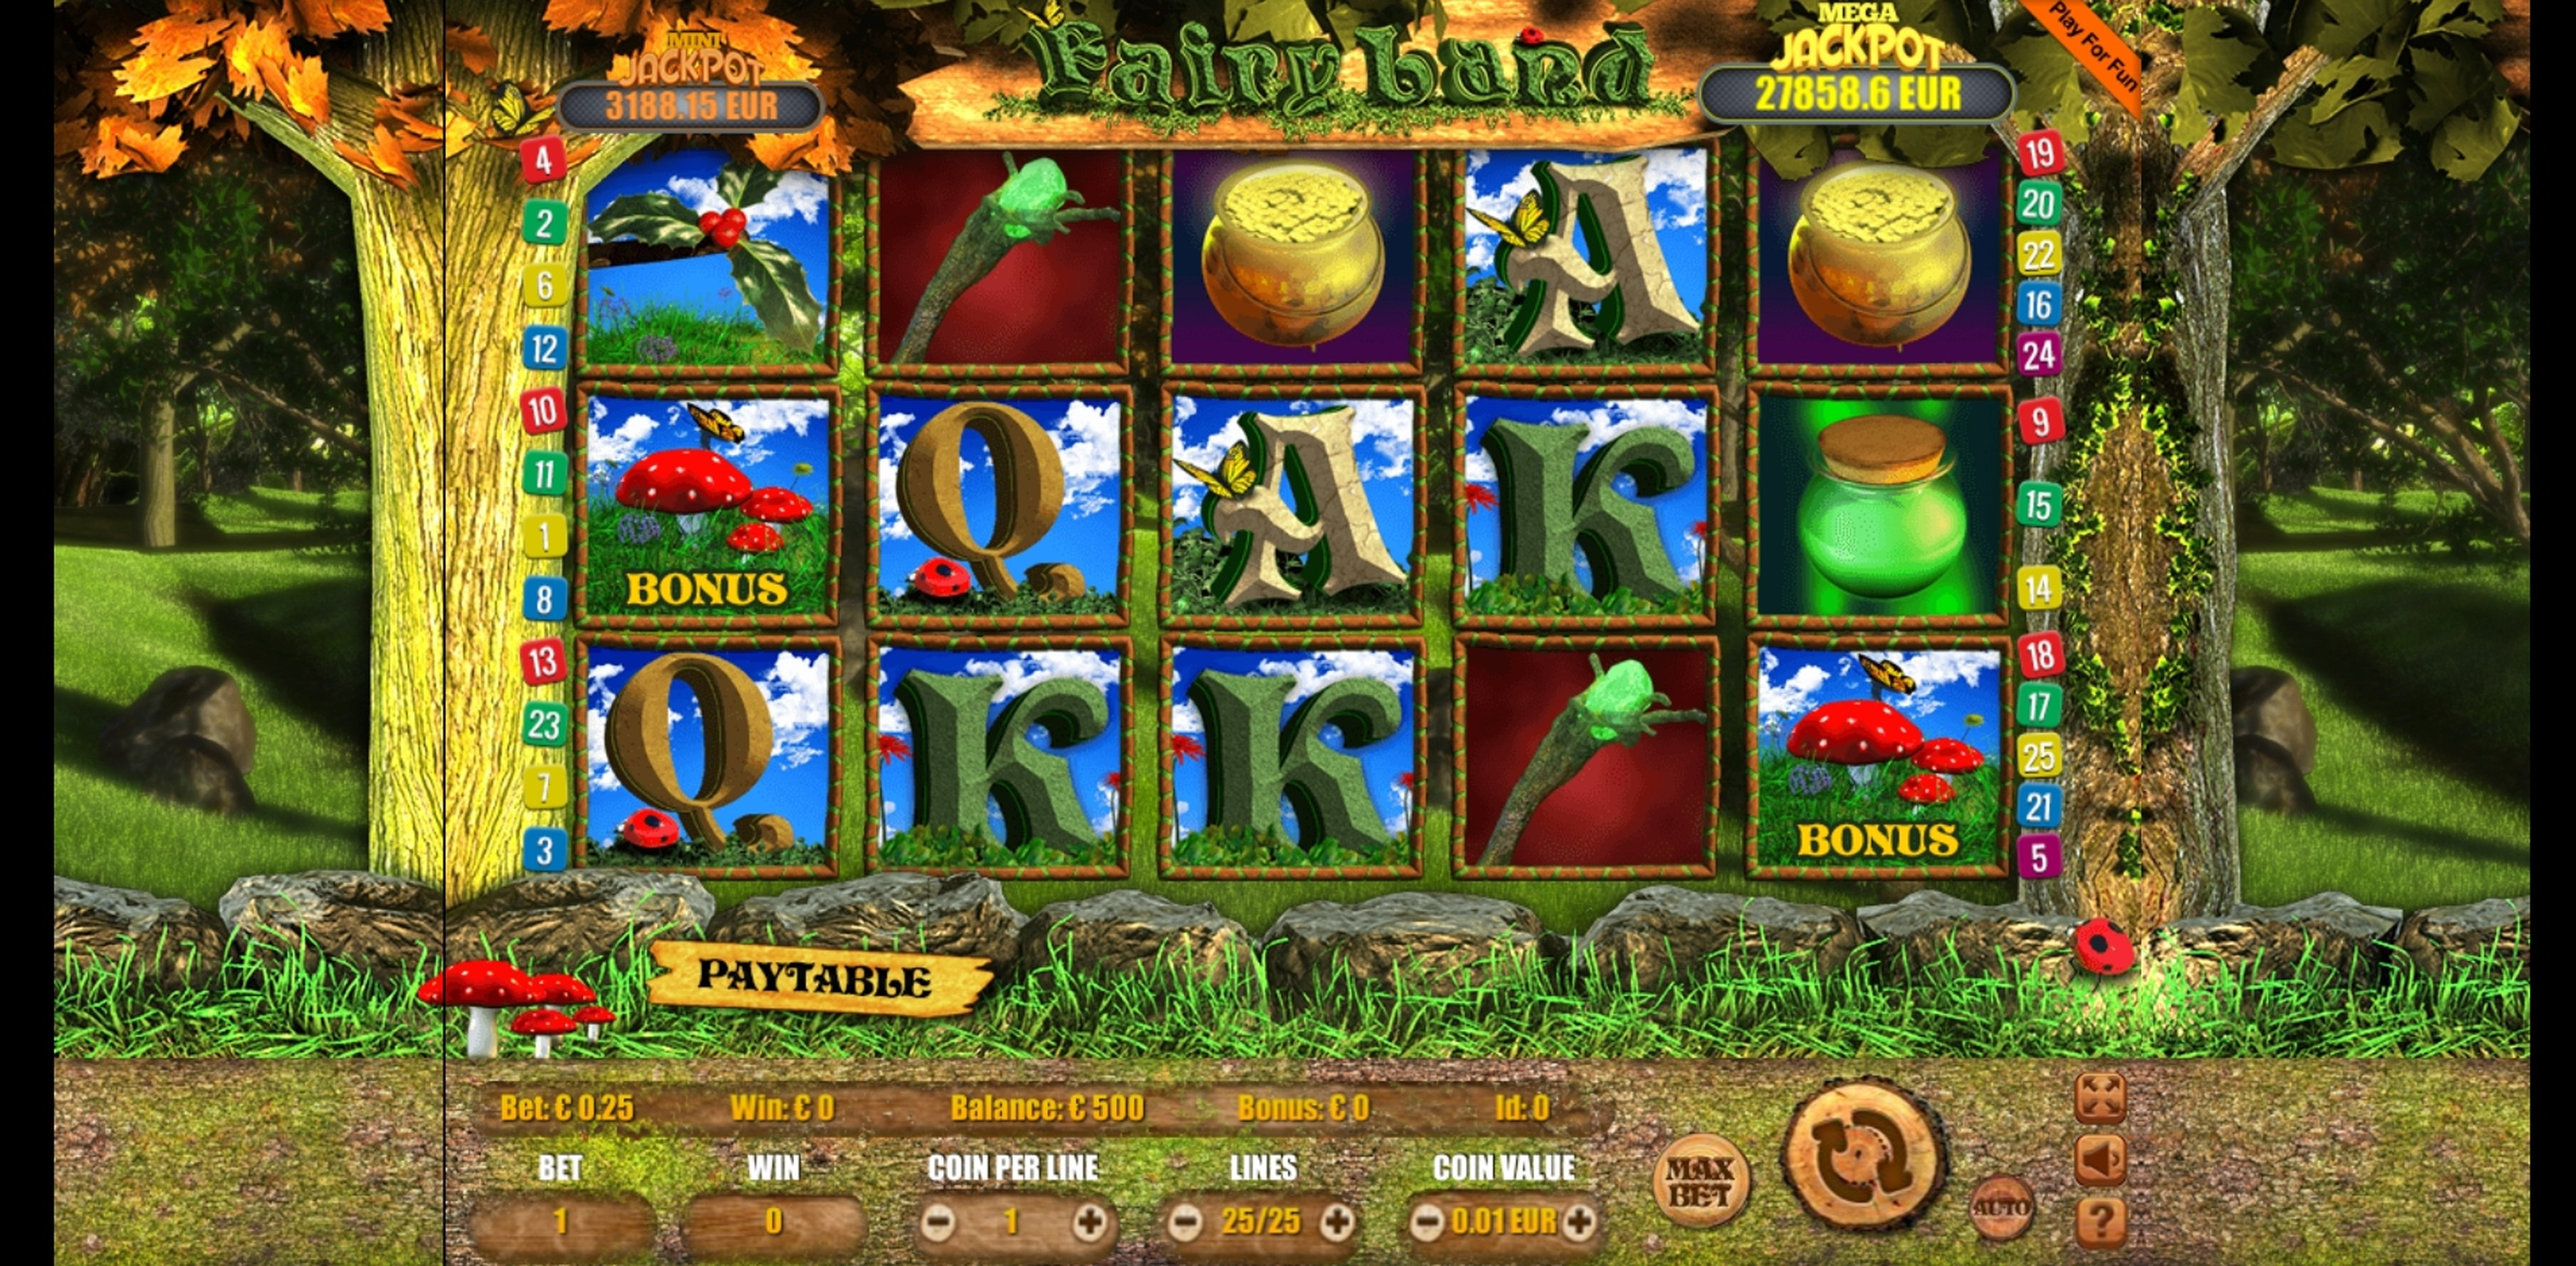 Reels in Fairyland Slot Game by bluberi